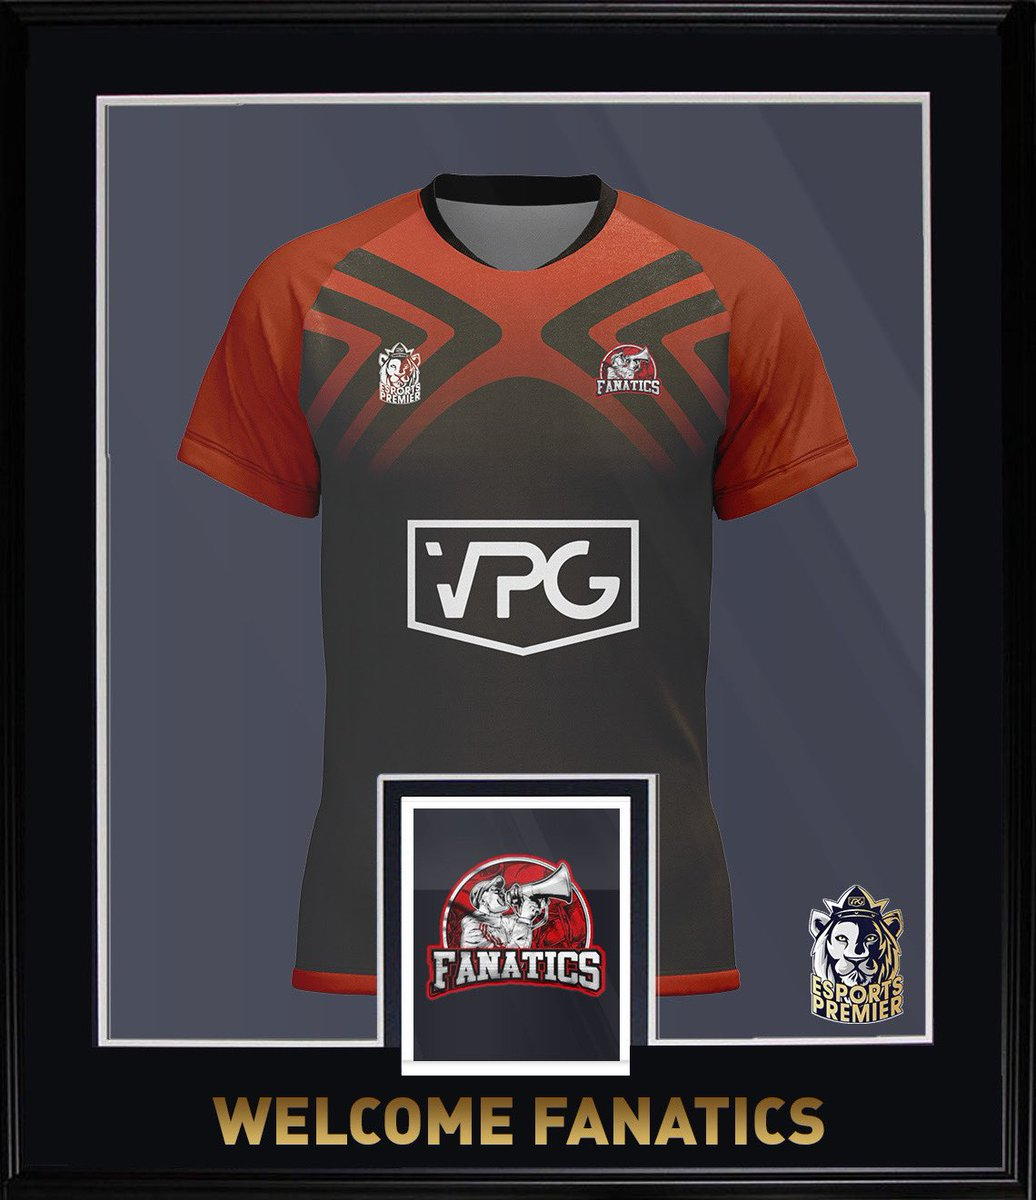 🤩 Welcome @FanaticsVPG into the @VPGPremier !   🌍 Nationality: 🇬🇧   🏆 Previously known as New Kidz, got promoted from the Premier North Tier! @Samme035 scored 32 goals last season and will be the key to take them to glory in the Premier!   #Fanatics #FIFA21 #ProClubs #VPG https://t.co/Sih5jhoOWo